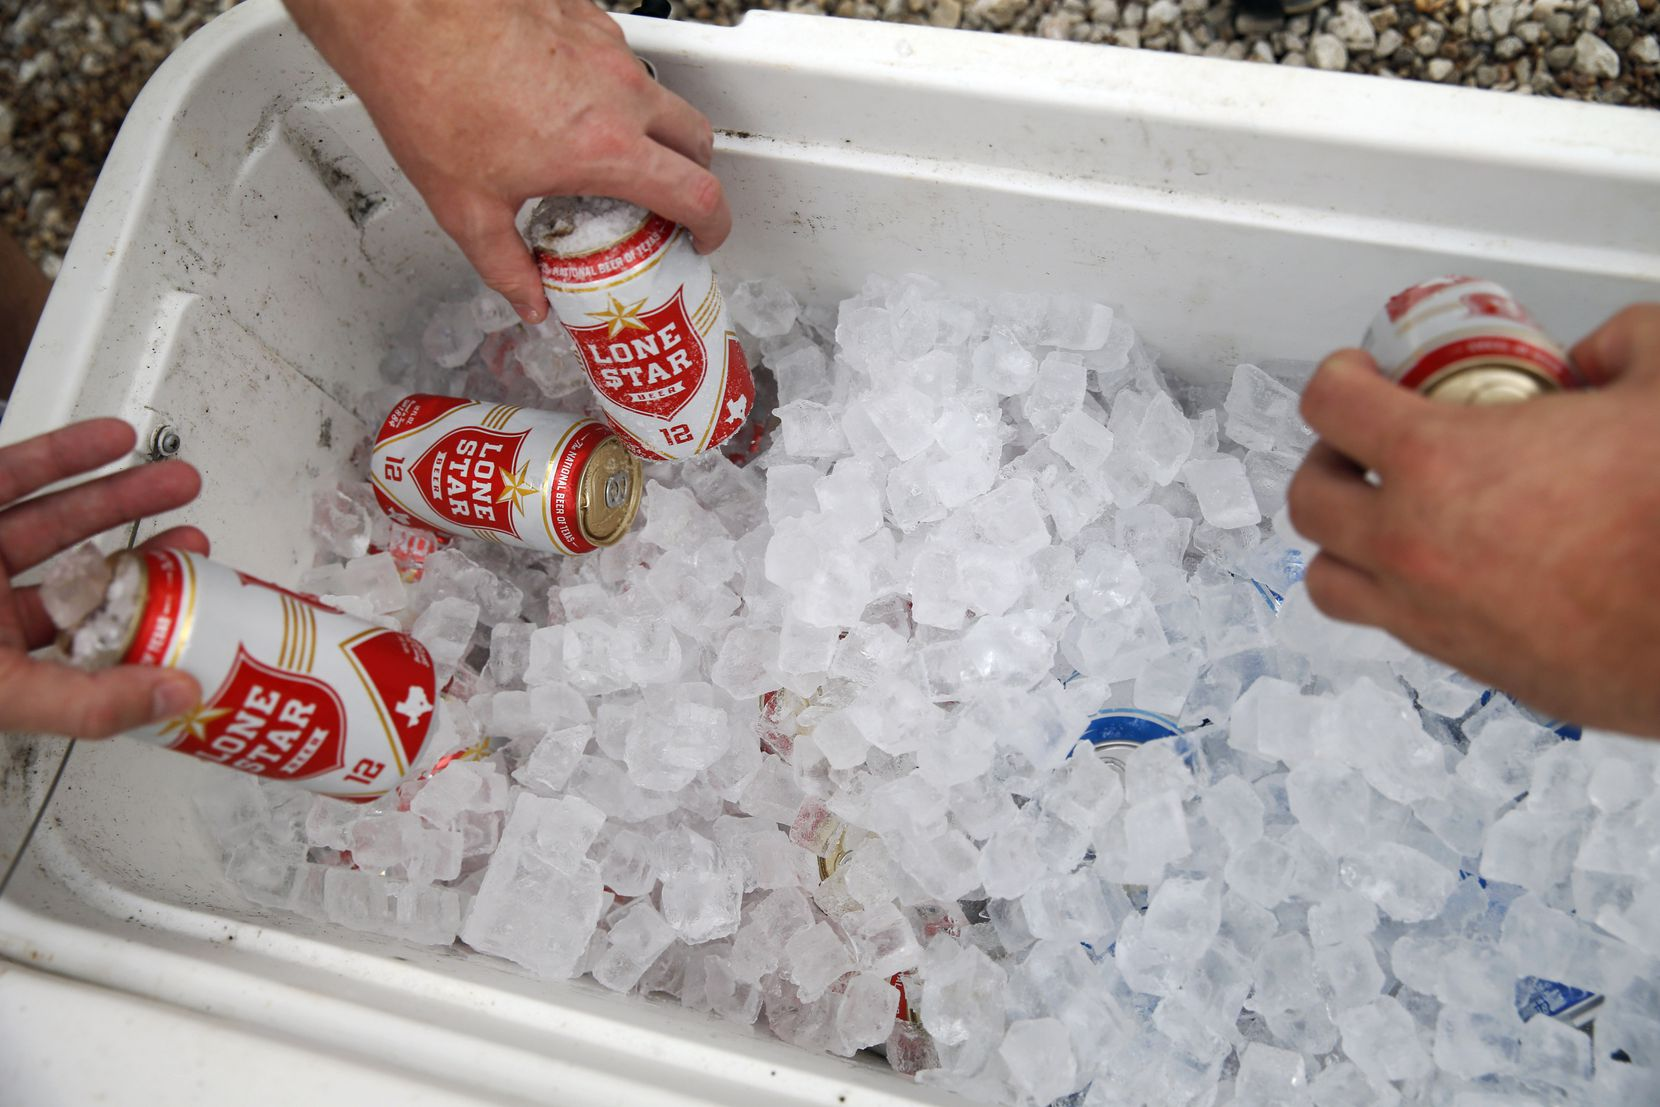 People grab free beer to drink as they wait in line at Snow's BBQ.